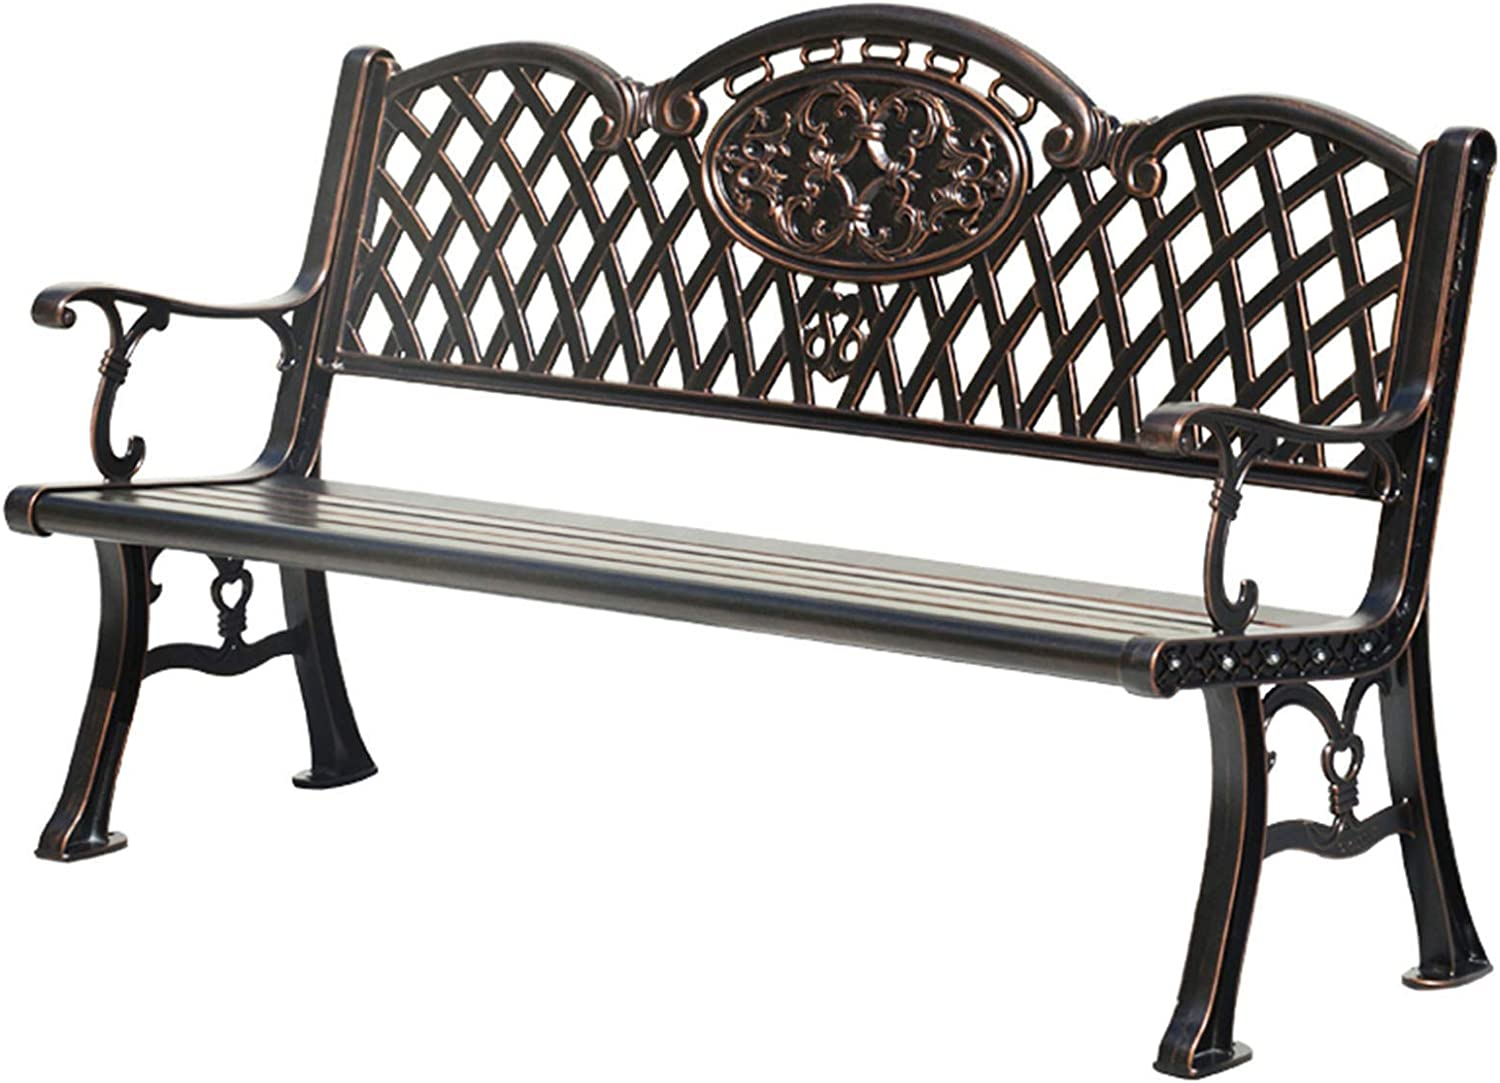 Outdoor Cast Aluminum Park Bench, Wrought Iron Hollow Leisure Backrest Garden Bench Seat, Balcony Terrace Anti-corrosion And Anti-rust Retro Bench With Armrests, Can Accommodate 2-3 People